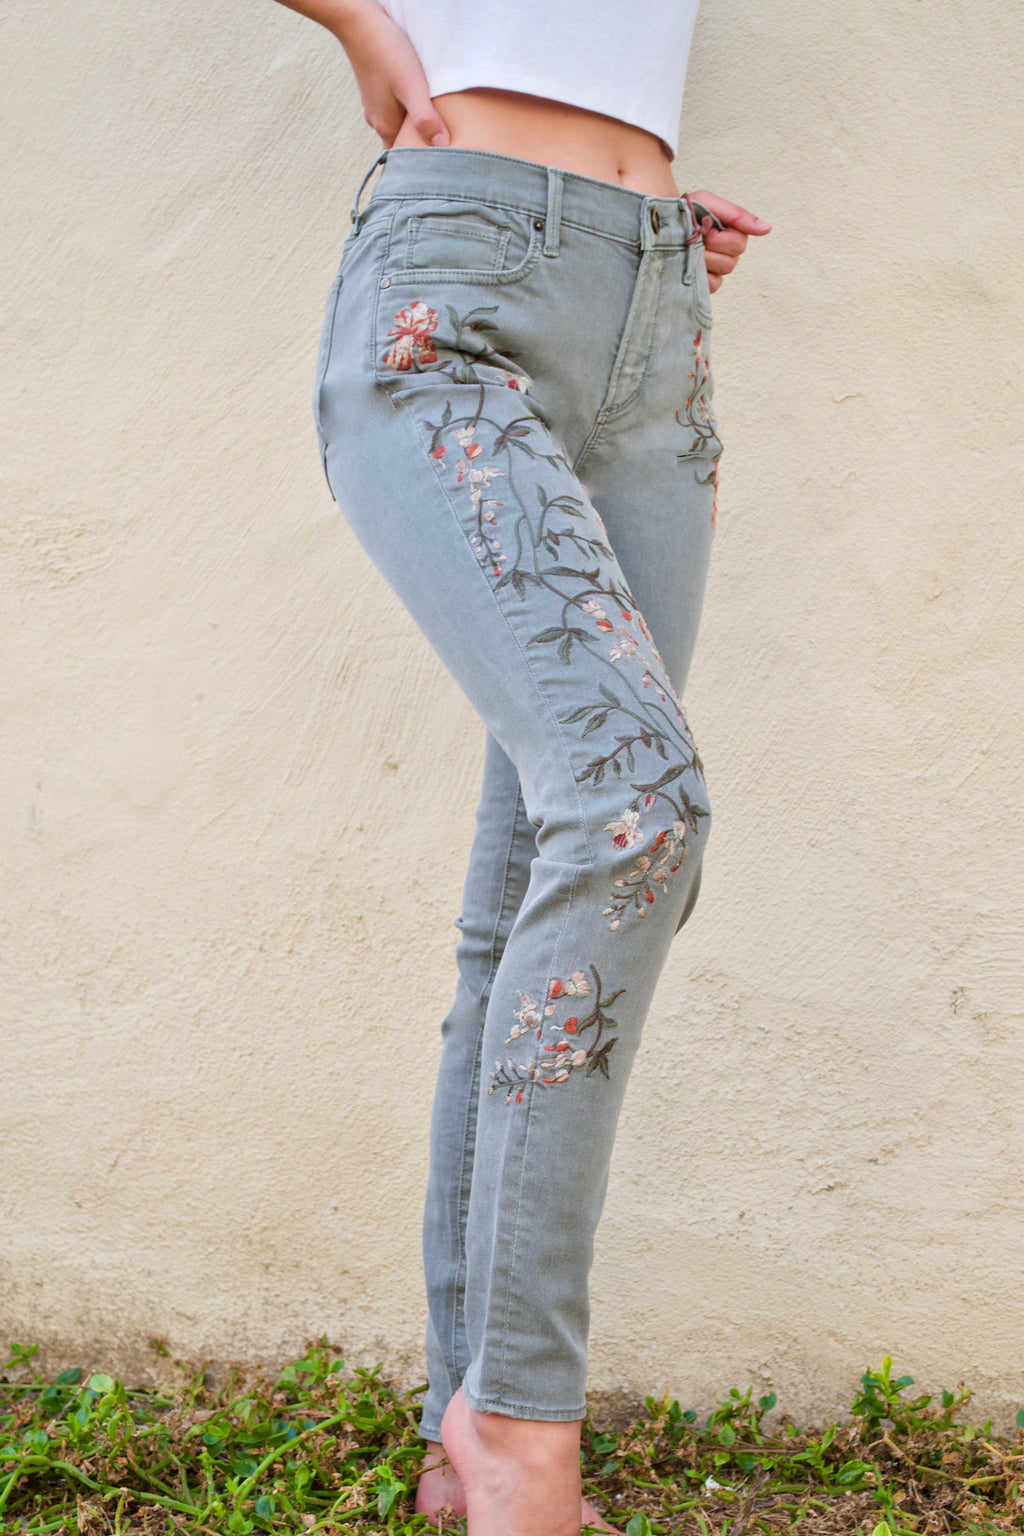 Driftwood Jackie Olive Jeans